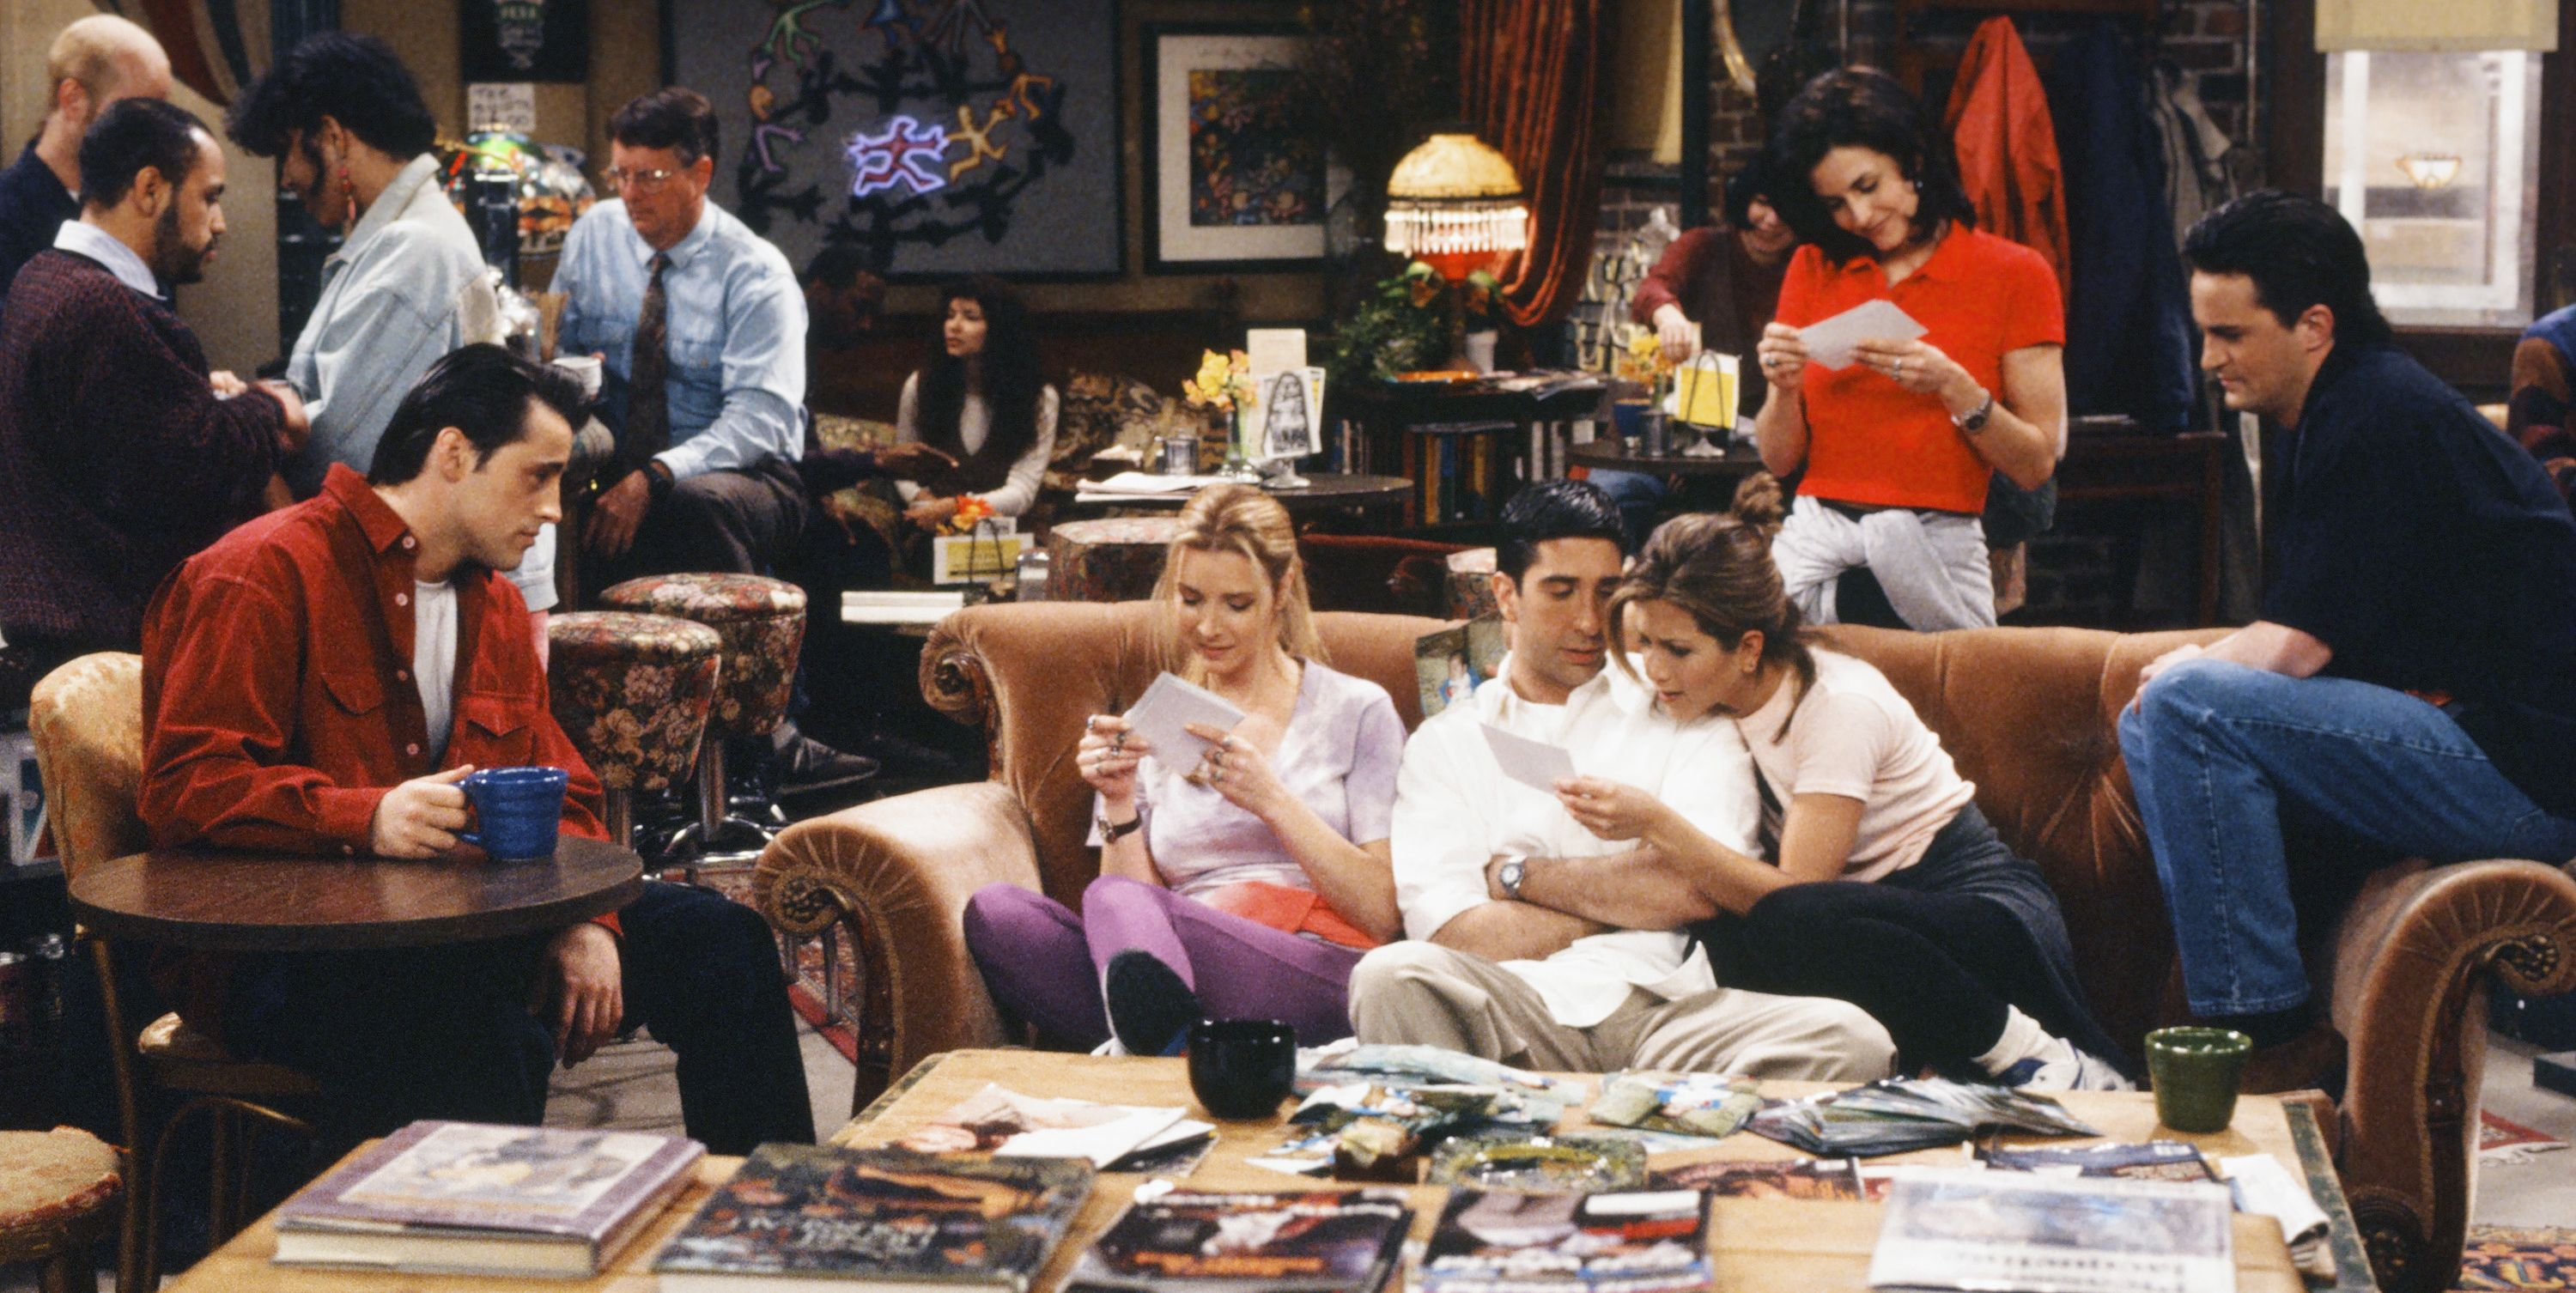 The orange sofa in Central Perk was found in the basement of Warner Bros.